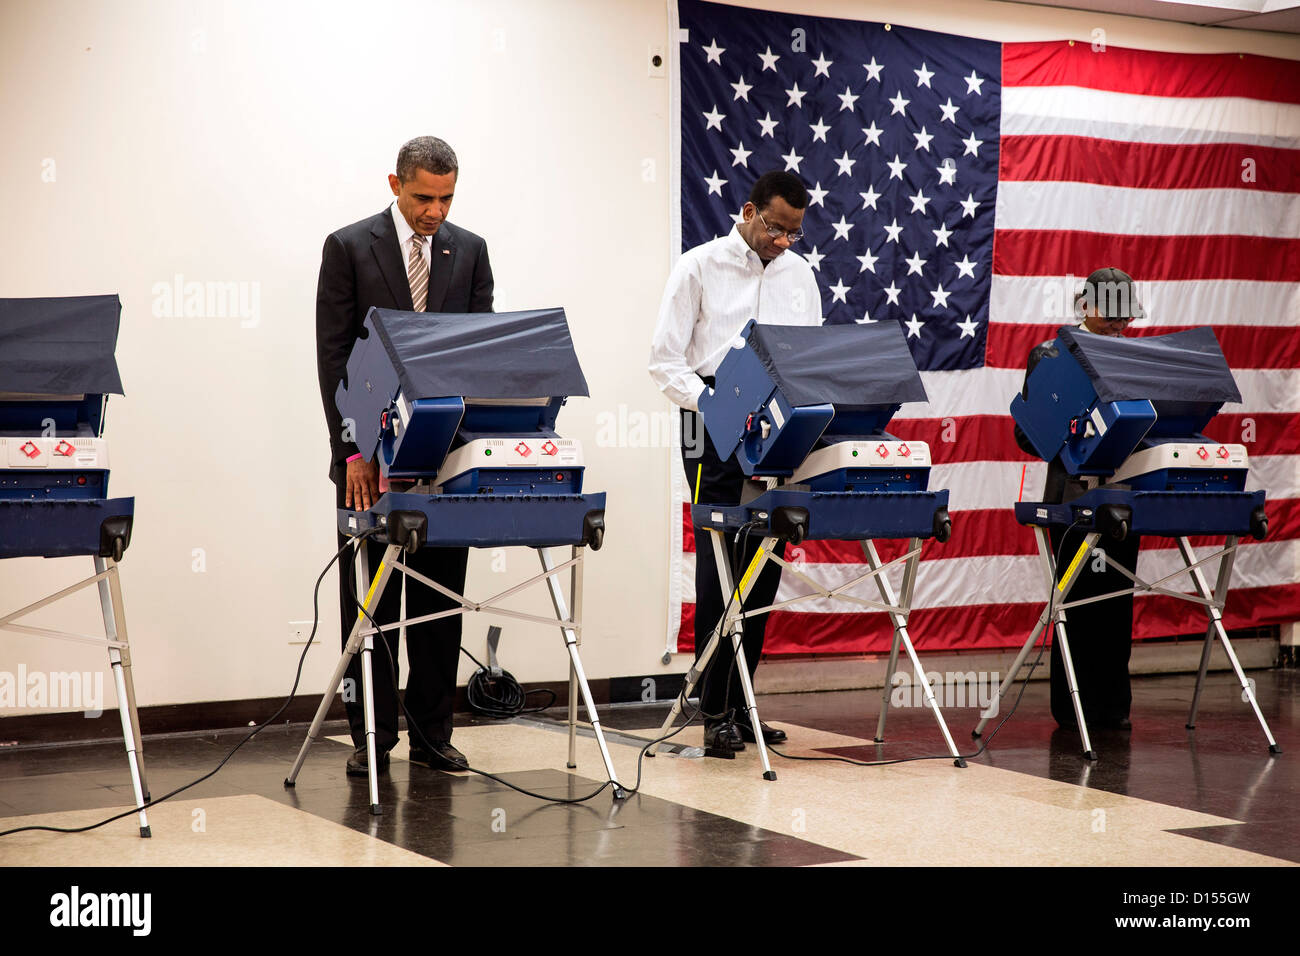 US President Barack Obama casts his ballot during early voting at the Martin Luther King Jr. Community Center October - Stock Image